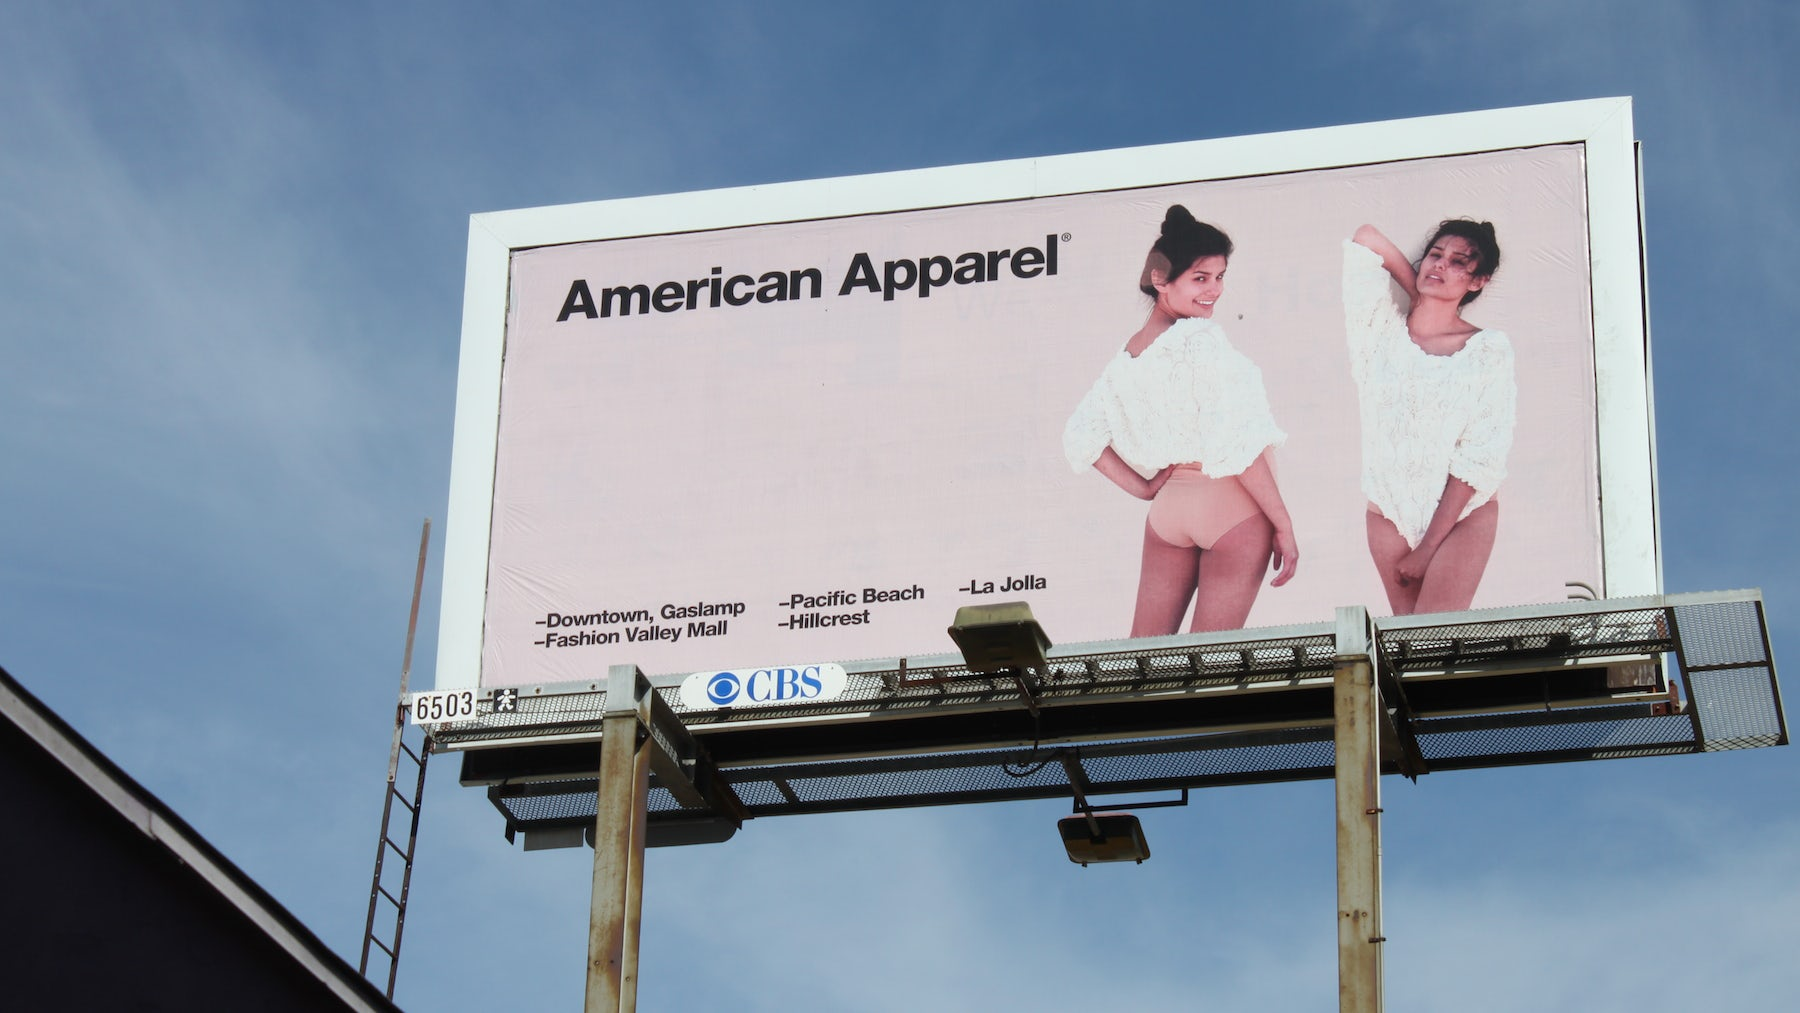 An American Apparel billboard | Source: Flickr/Emily Burnett